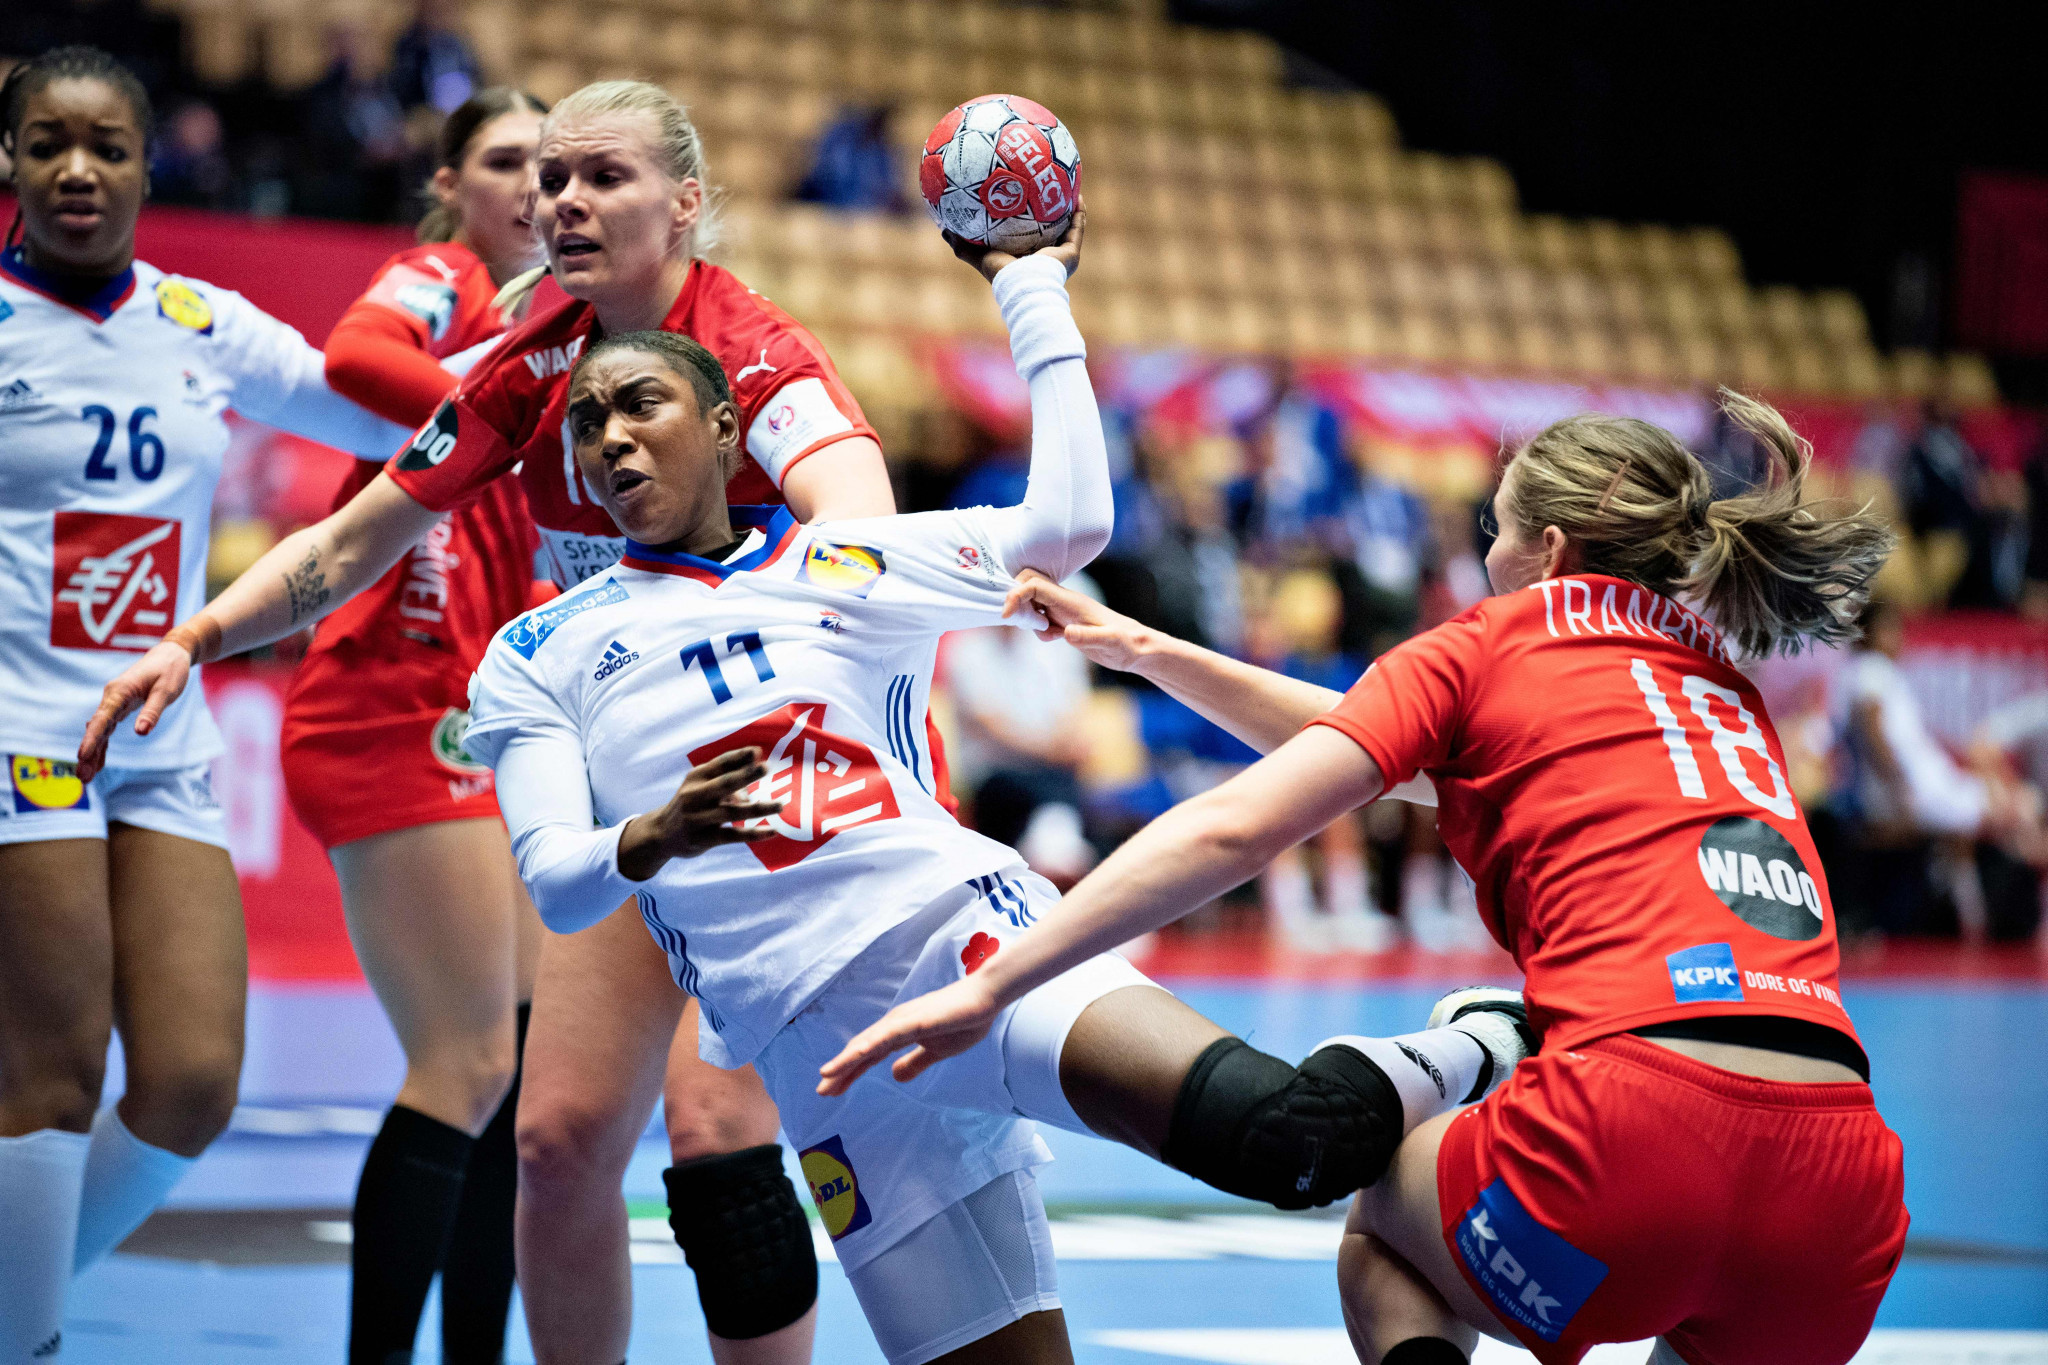 Serbia and Slovenia agonisingly knocked out of European Women's Handball Championship after one goal losses